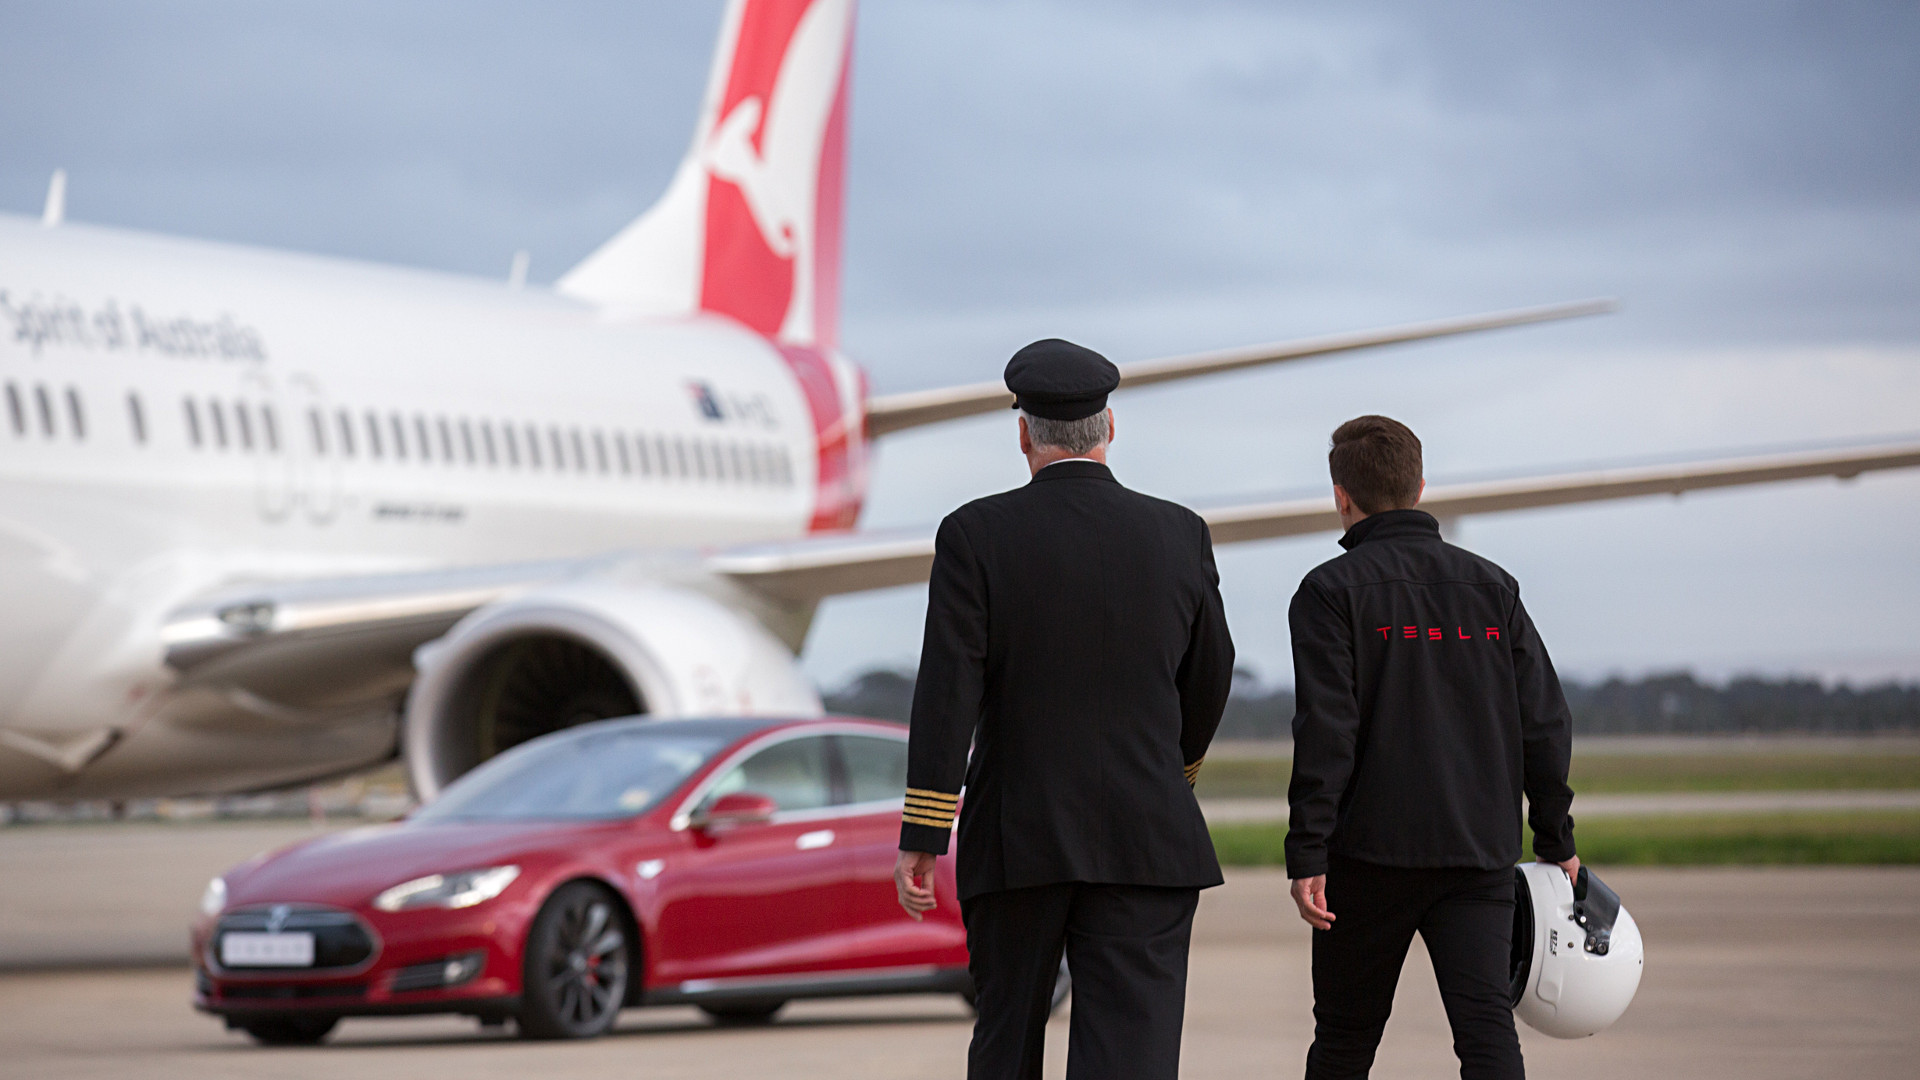 Qantas vs Tesla's new electric car